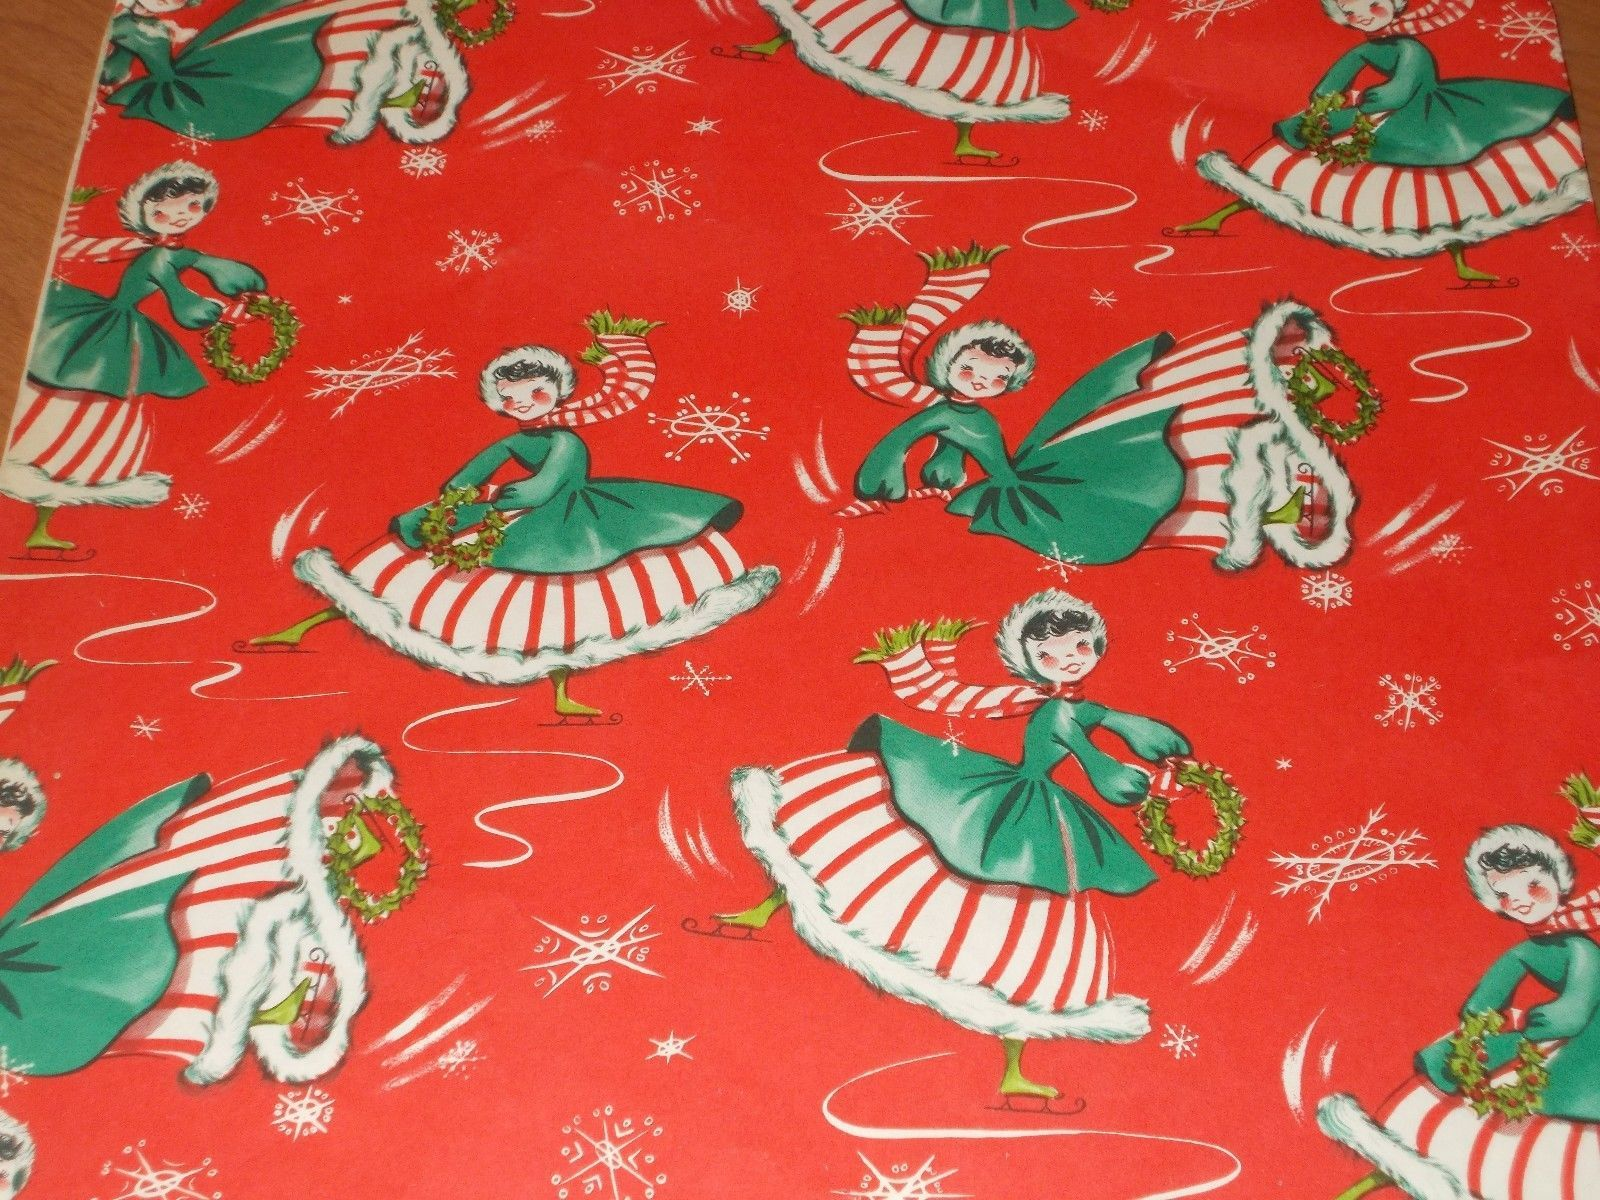 Vtg Christmas Wrapping Paper Gift Wrap 1940 Ice Skating Girl On Red Wreath 2 Vintage Christmas Wrapping Paper Christmas Wrapping Paper Retro Christmas Cards